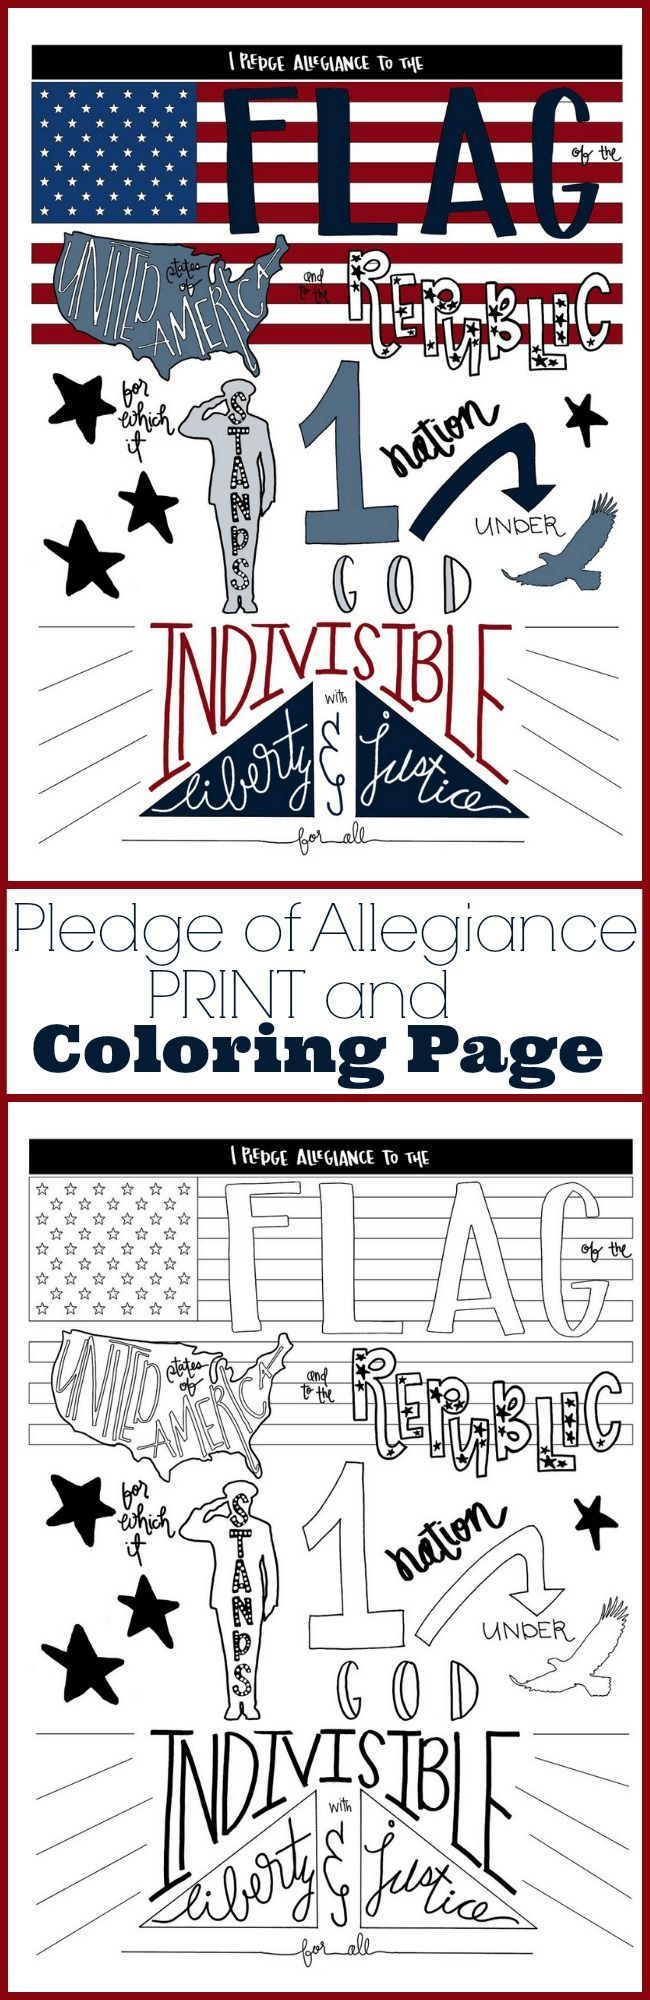 Pledge of Allegiance Print and Coloring page for 4th of July Patriotic craft ide...